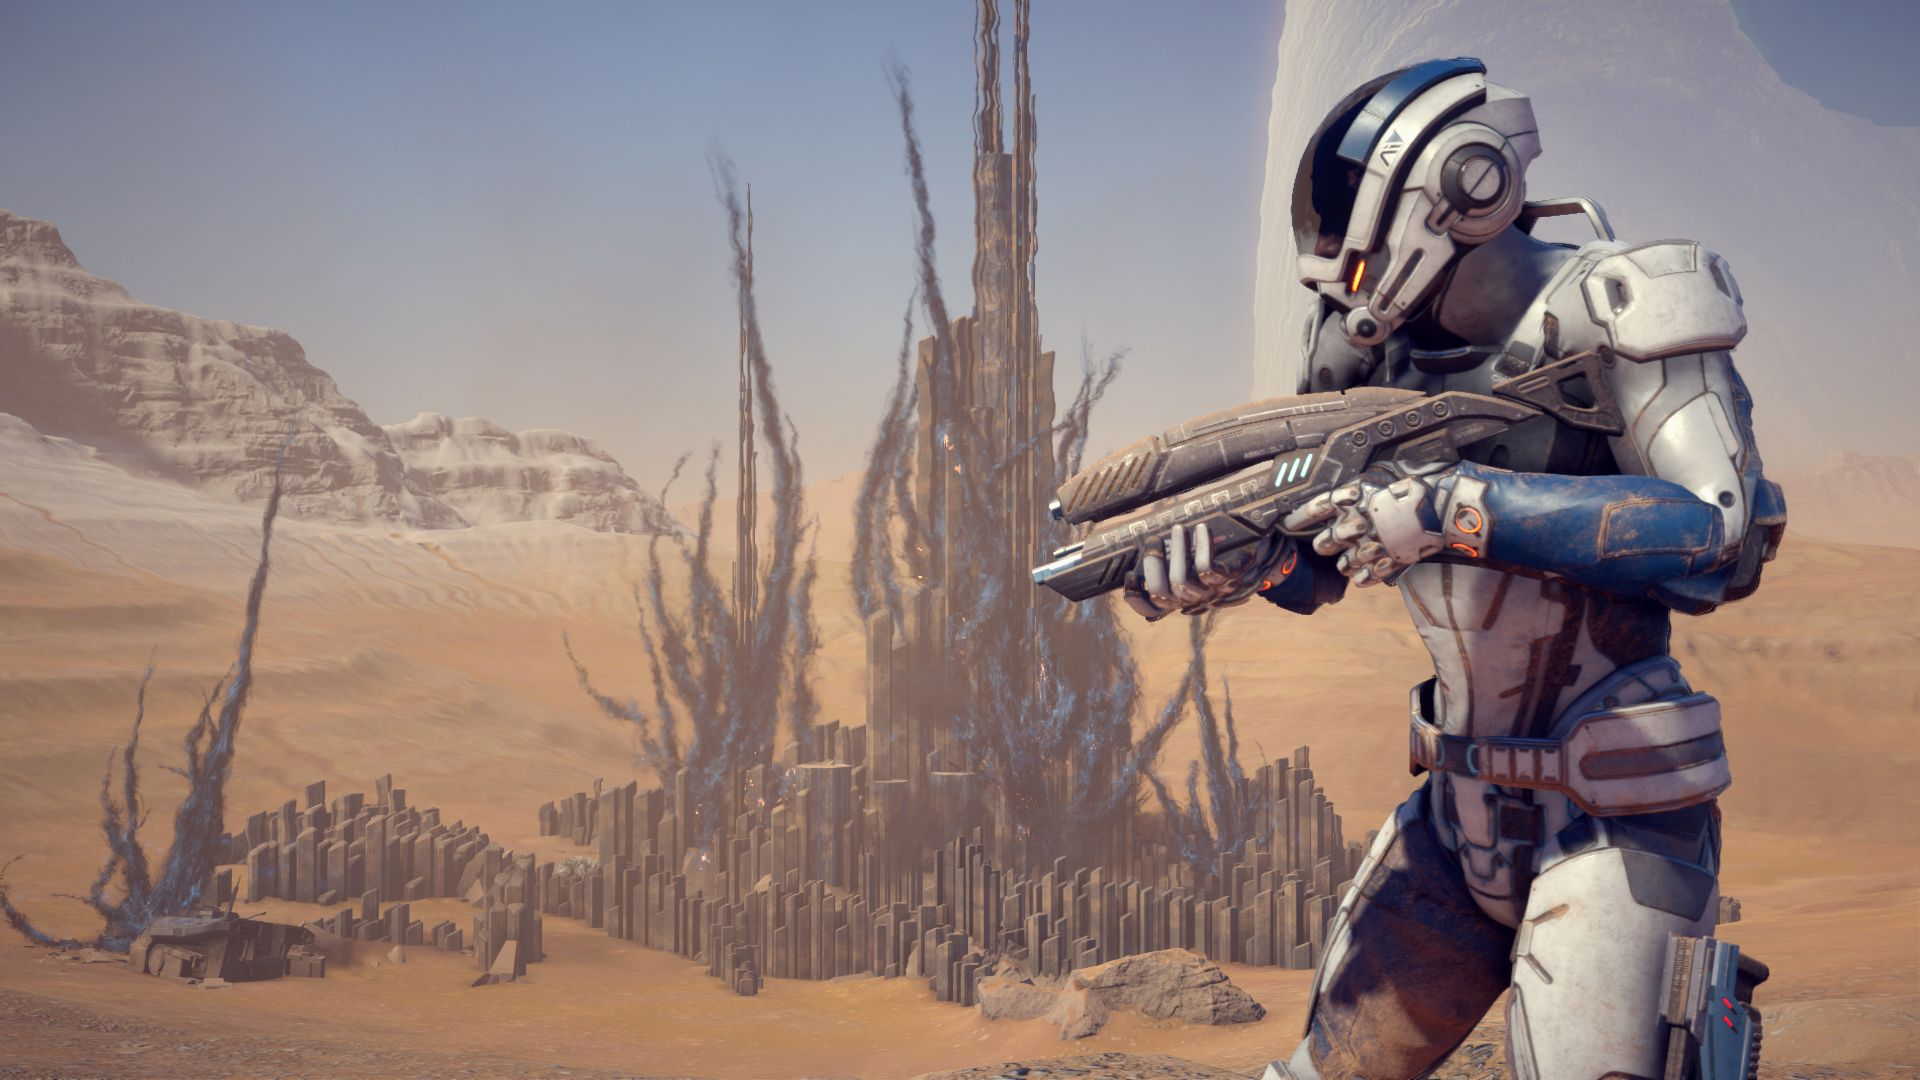 A Mass Effect Andromeda character awaits combat